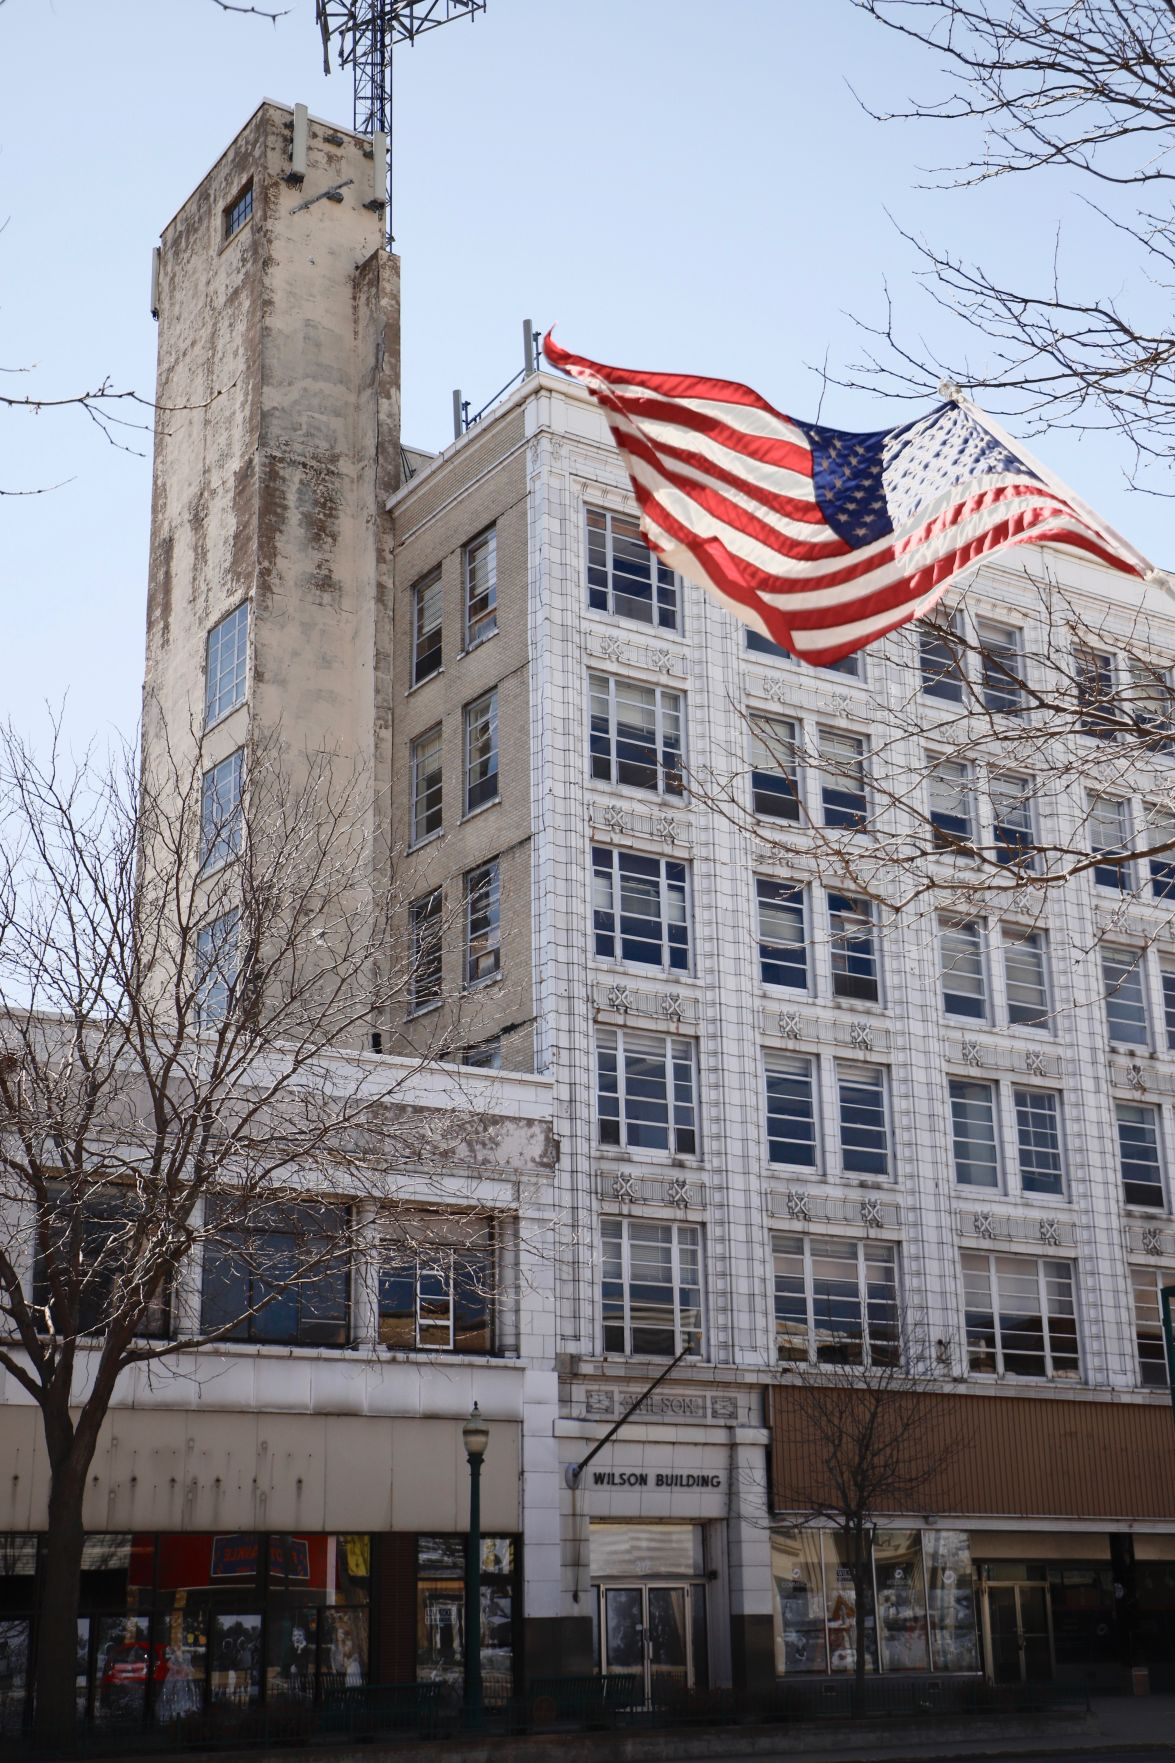 wilson building, verticle with flag